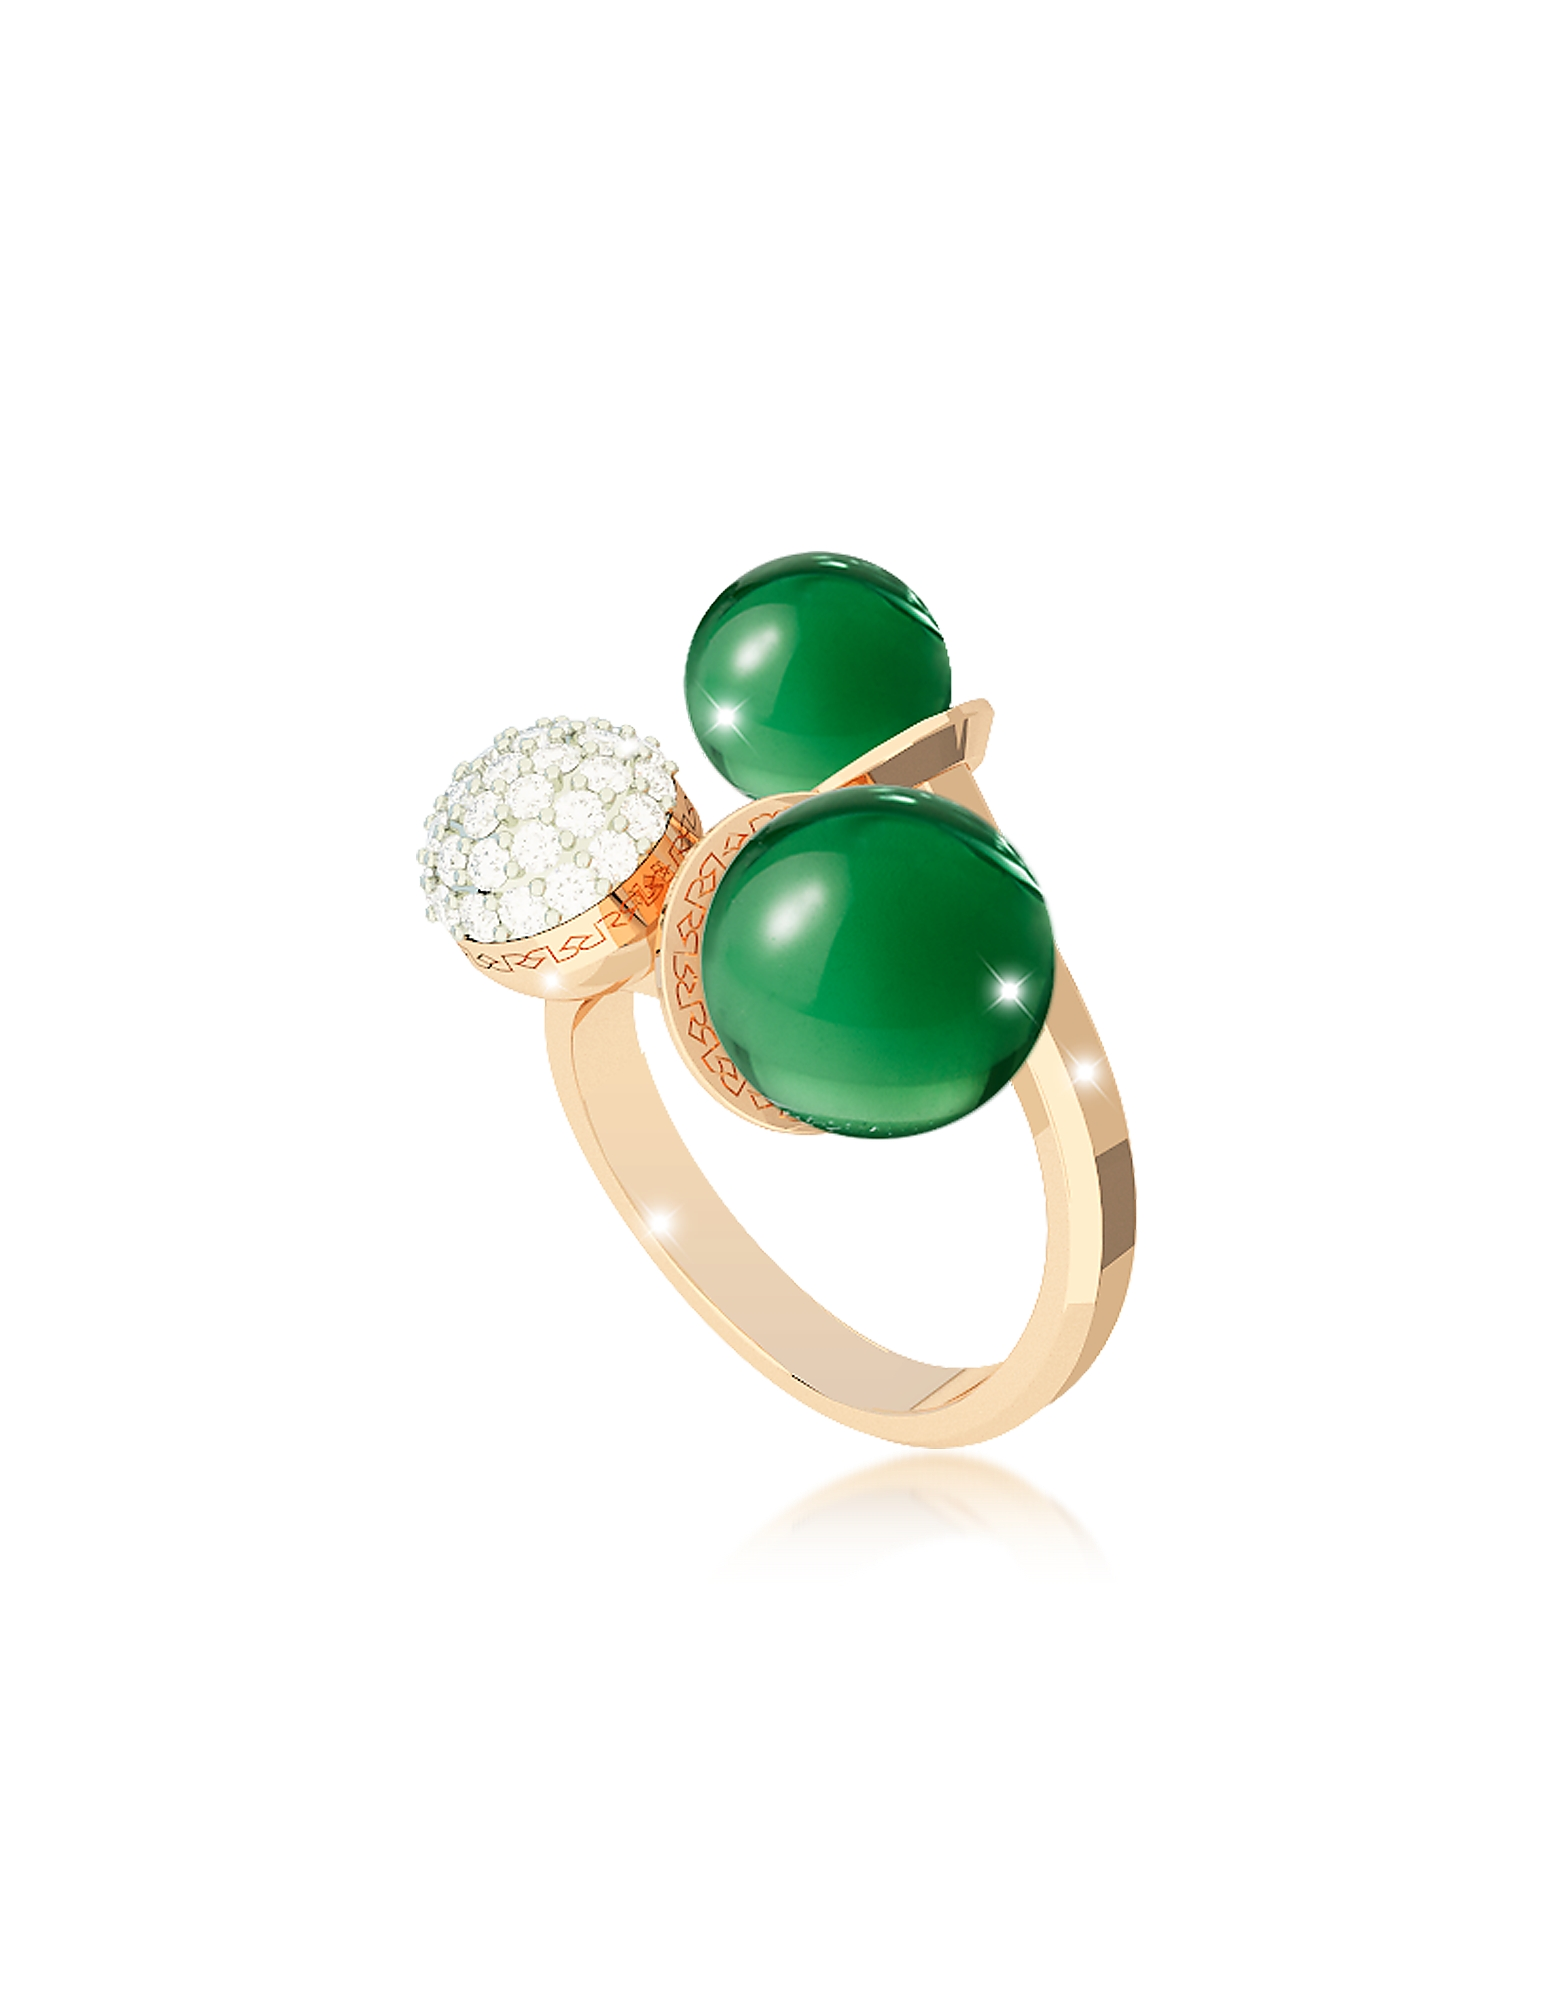 Rebecca Rings, Boulevard Stone Yellow Gold Over Bronze Ring w/Hydrothermal Green Stones and Cubic Zi